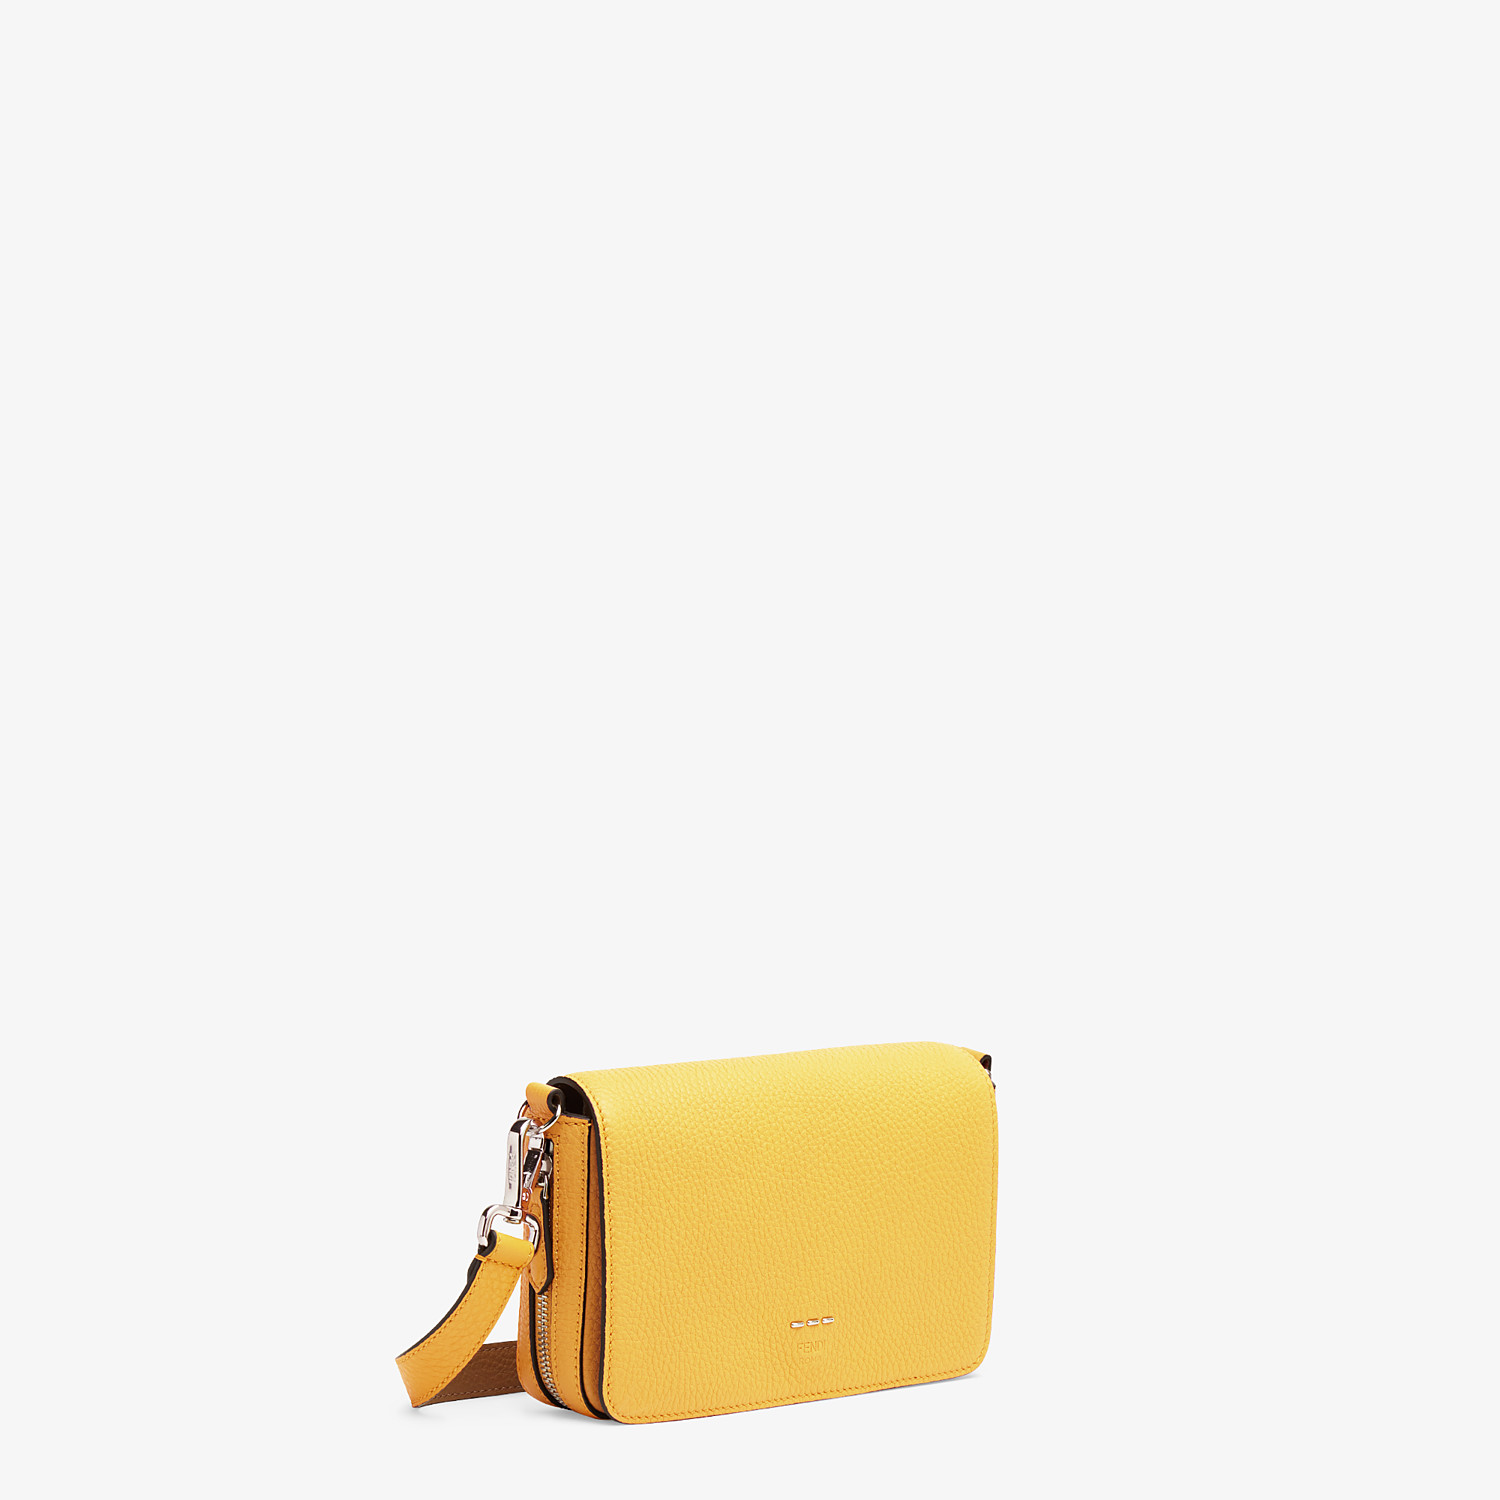 FENDI FLAP BAG - Yellow leather bag - view 2 detail